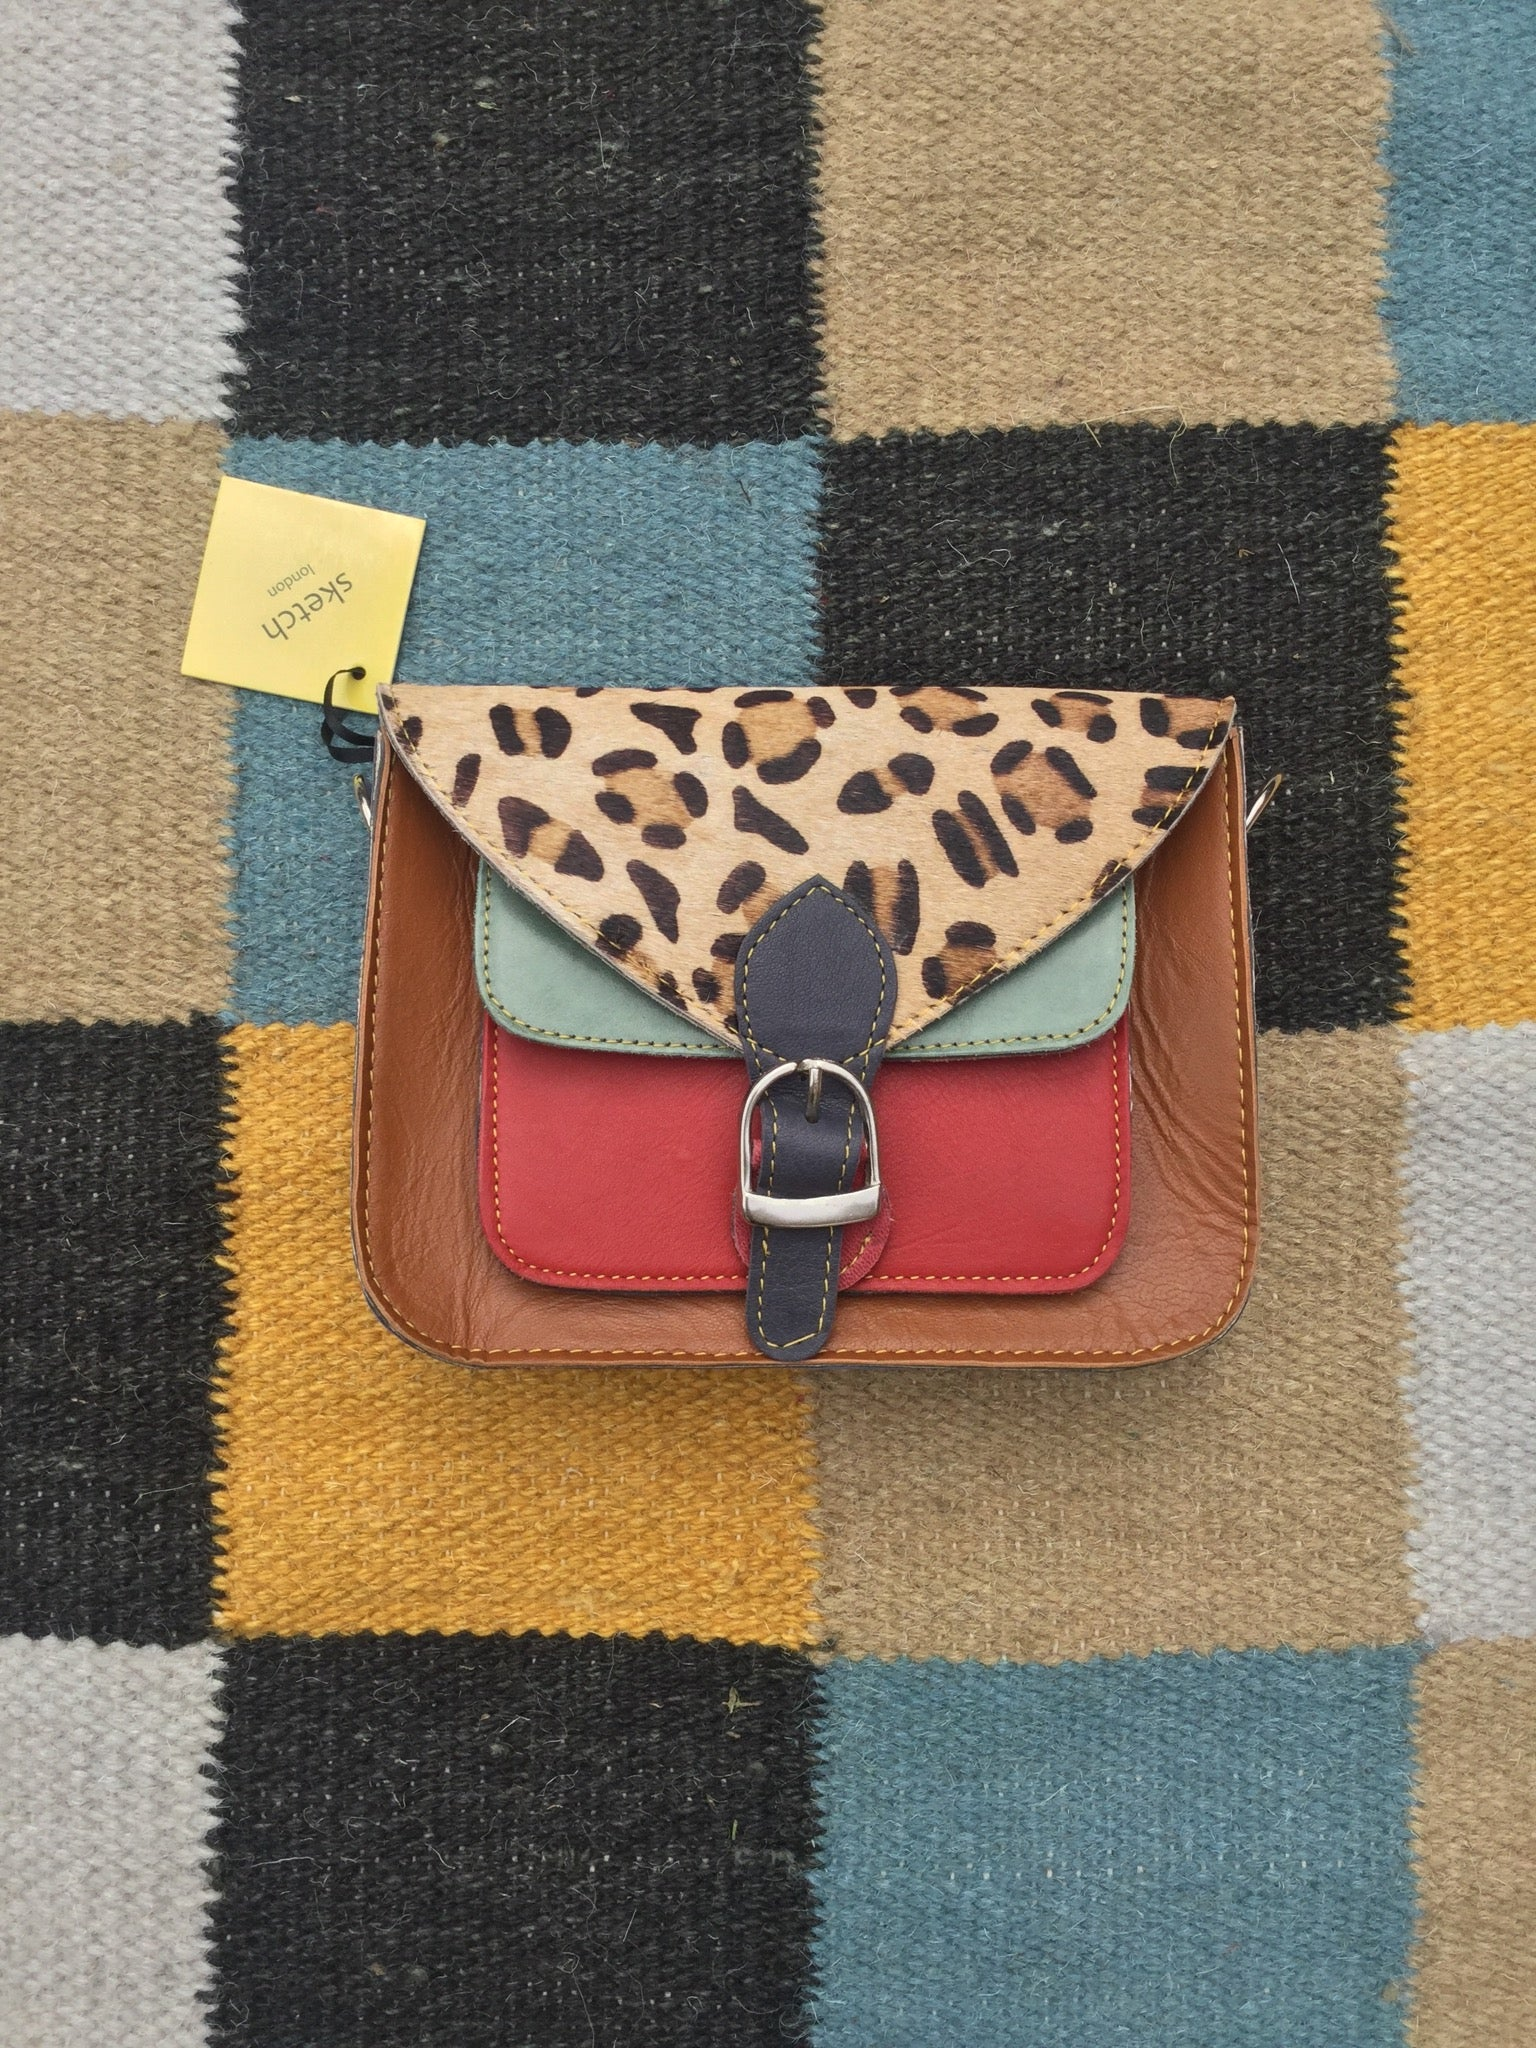 Leopard Print Satchel Bag: Caramel, Poppy & Soft Green